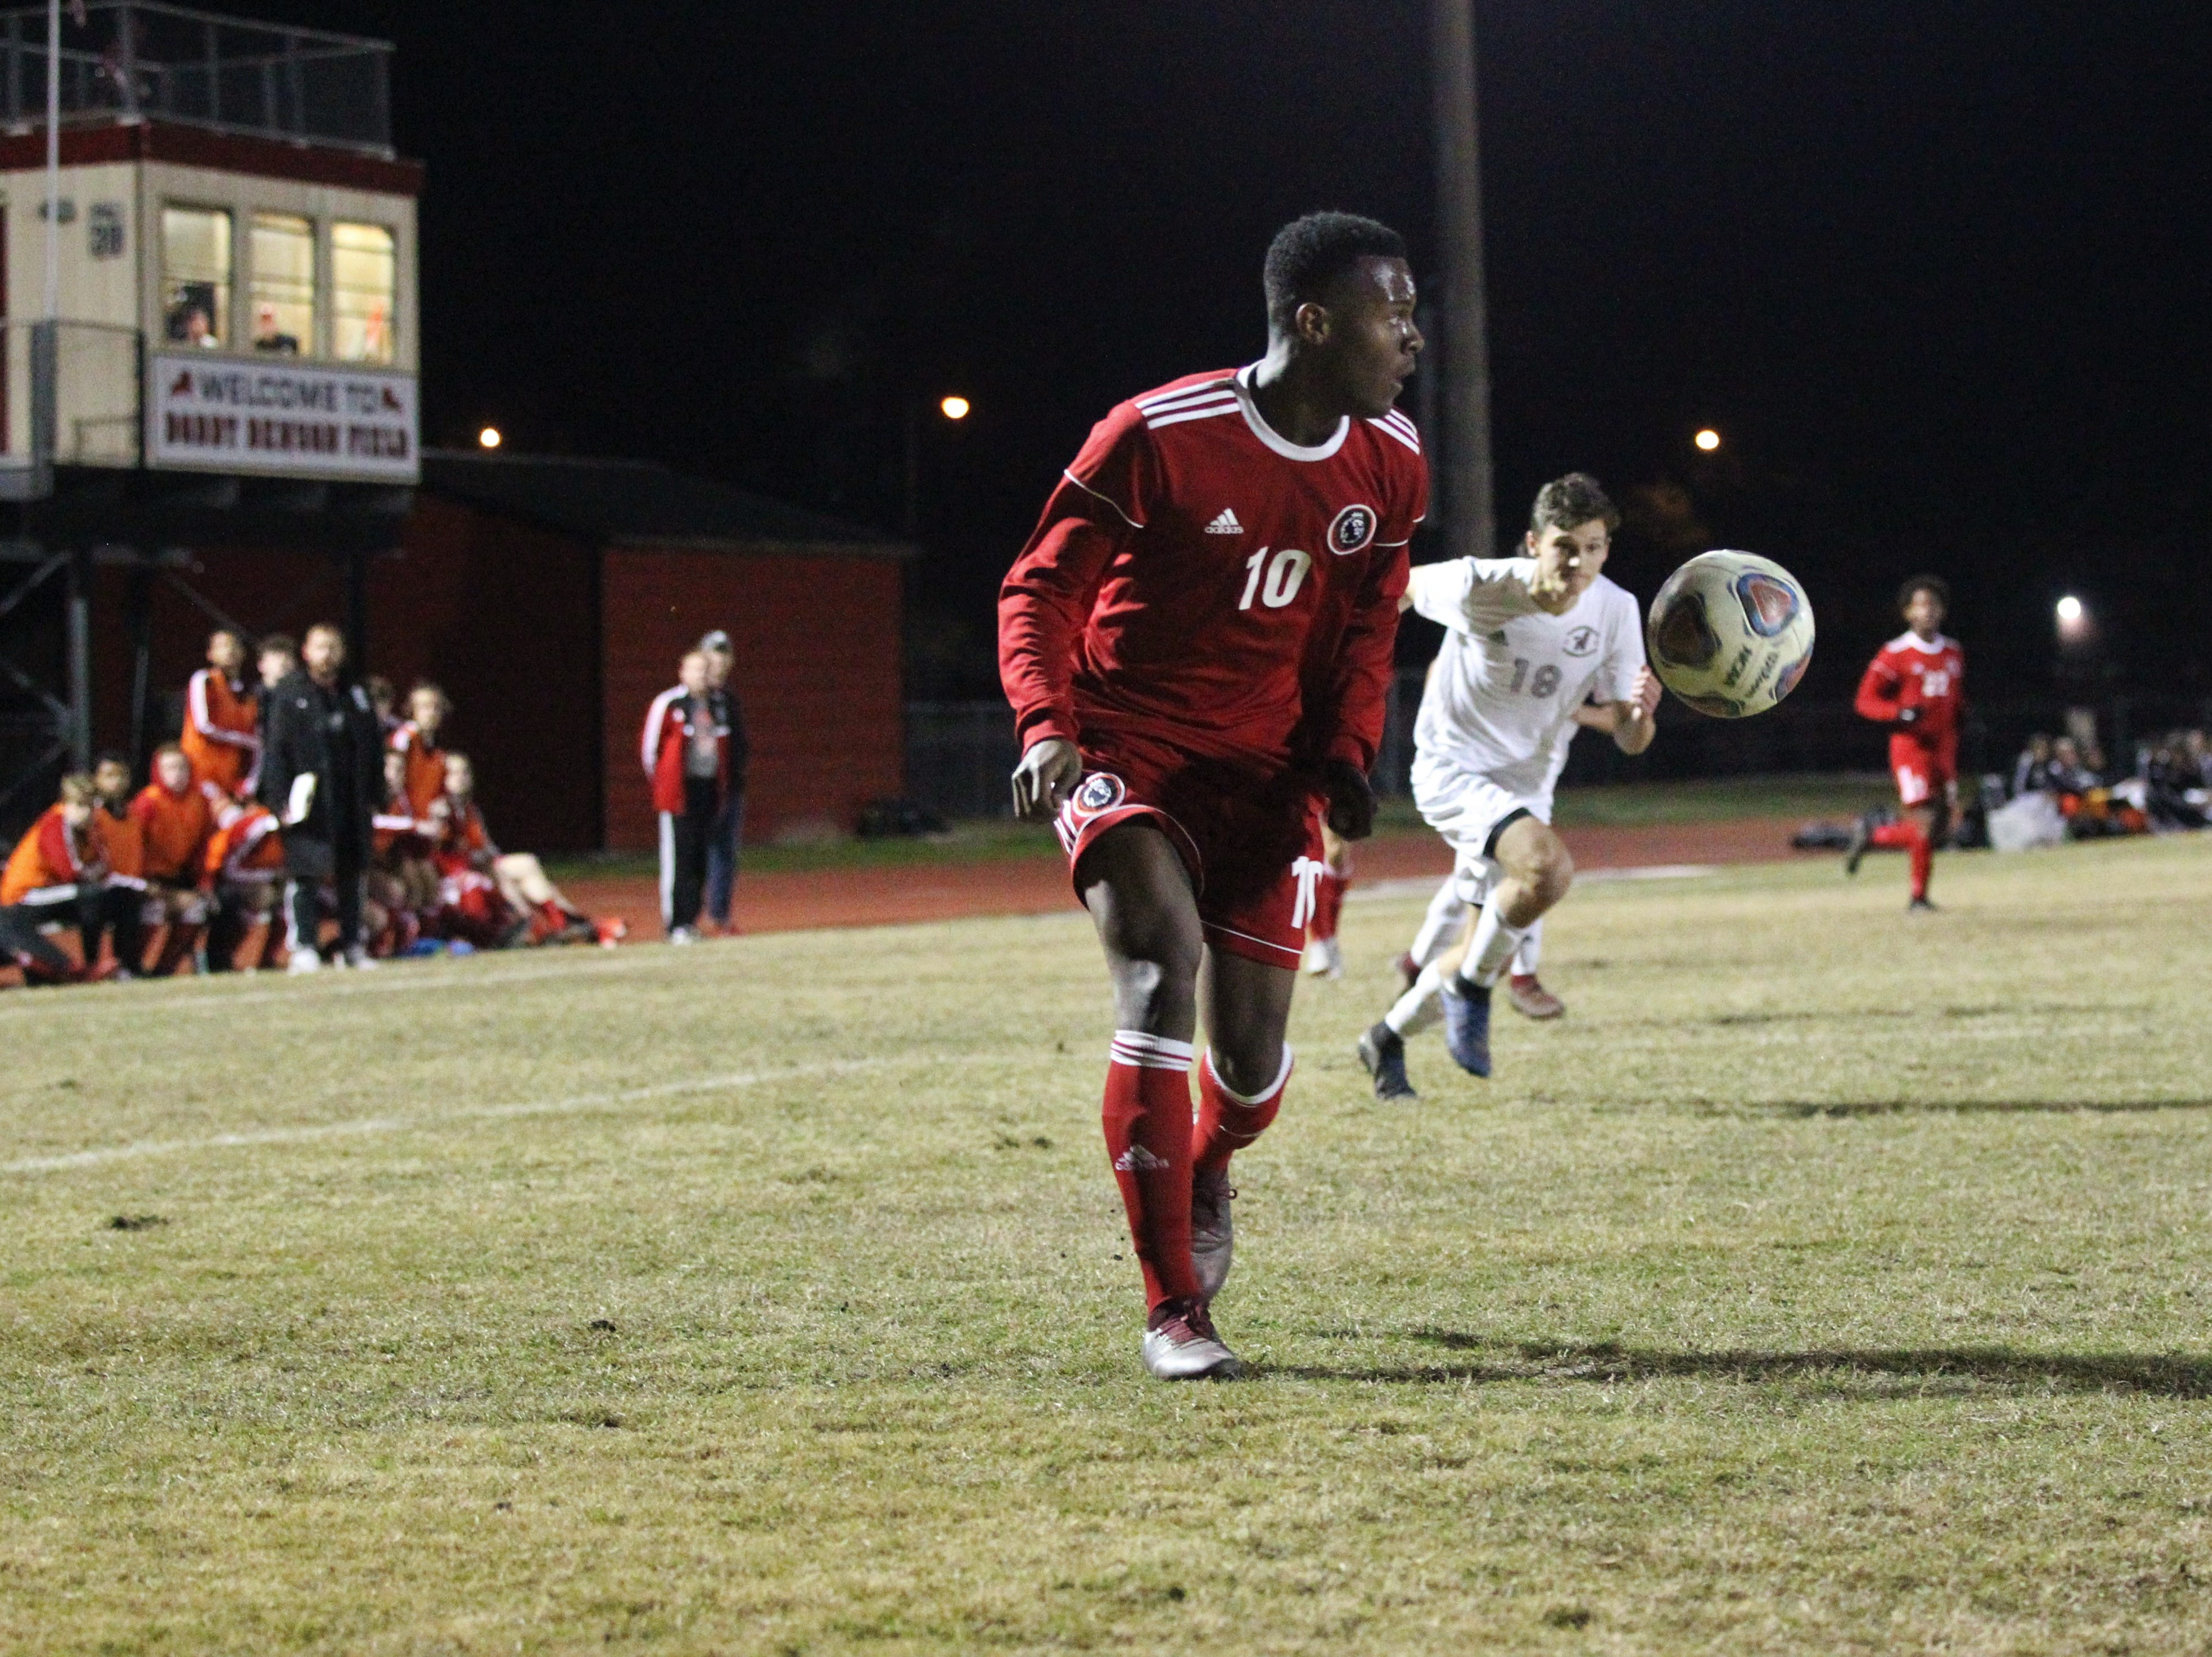 Leon's Jaden Jones-Riley looks for a pass in the box as the Lions' boys soccer team beat Niceville 1-0 in a Region 1-4A semifinal on Feb. 9, 2019.